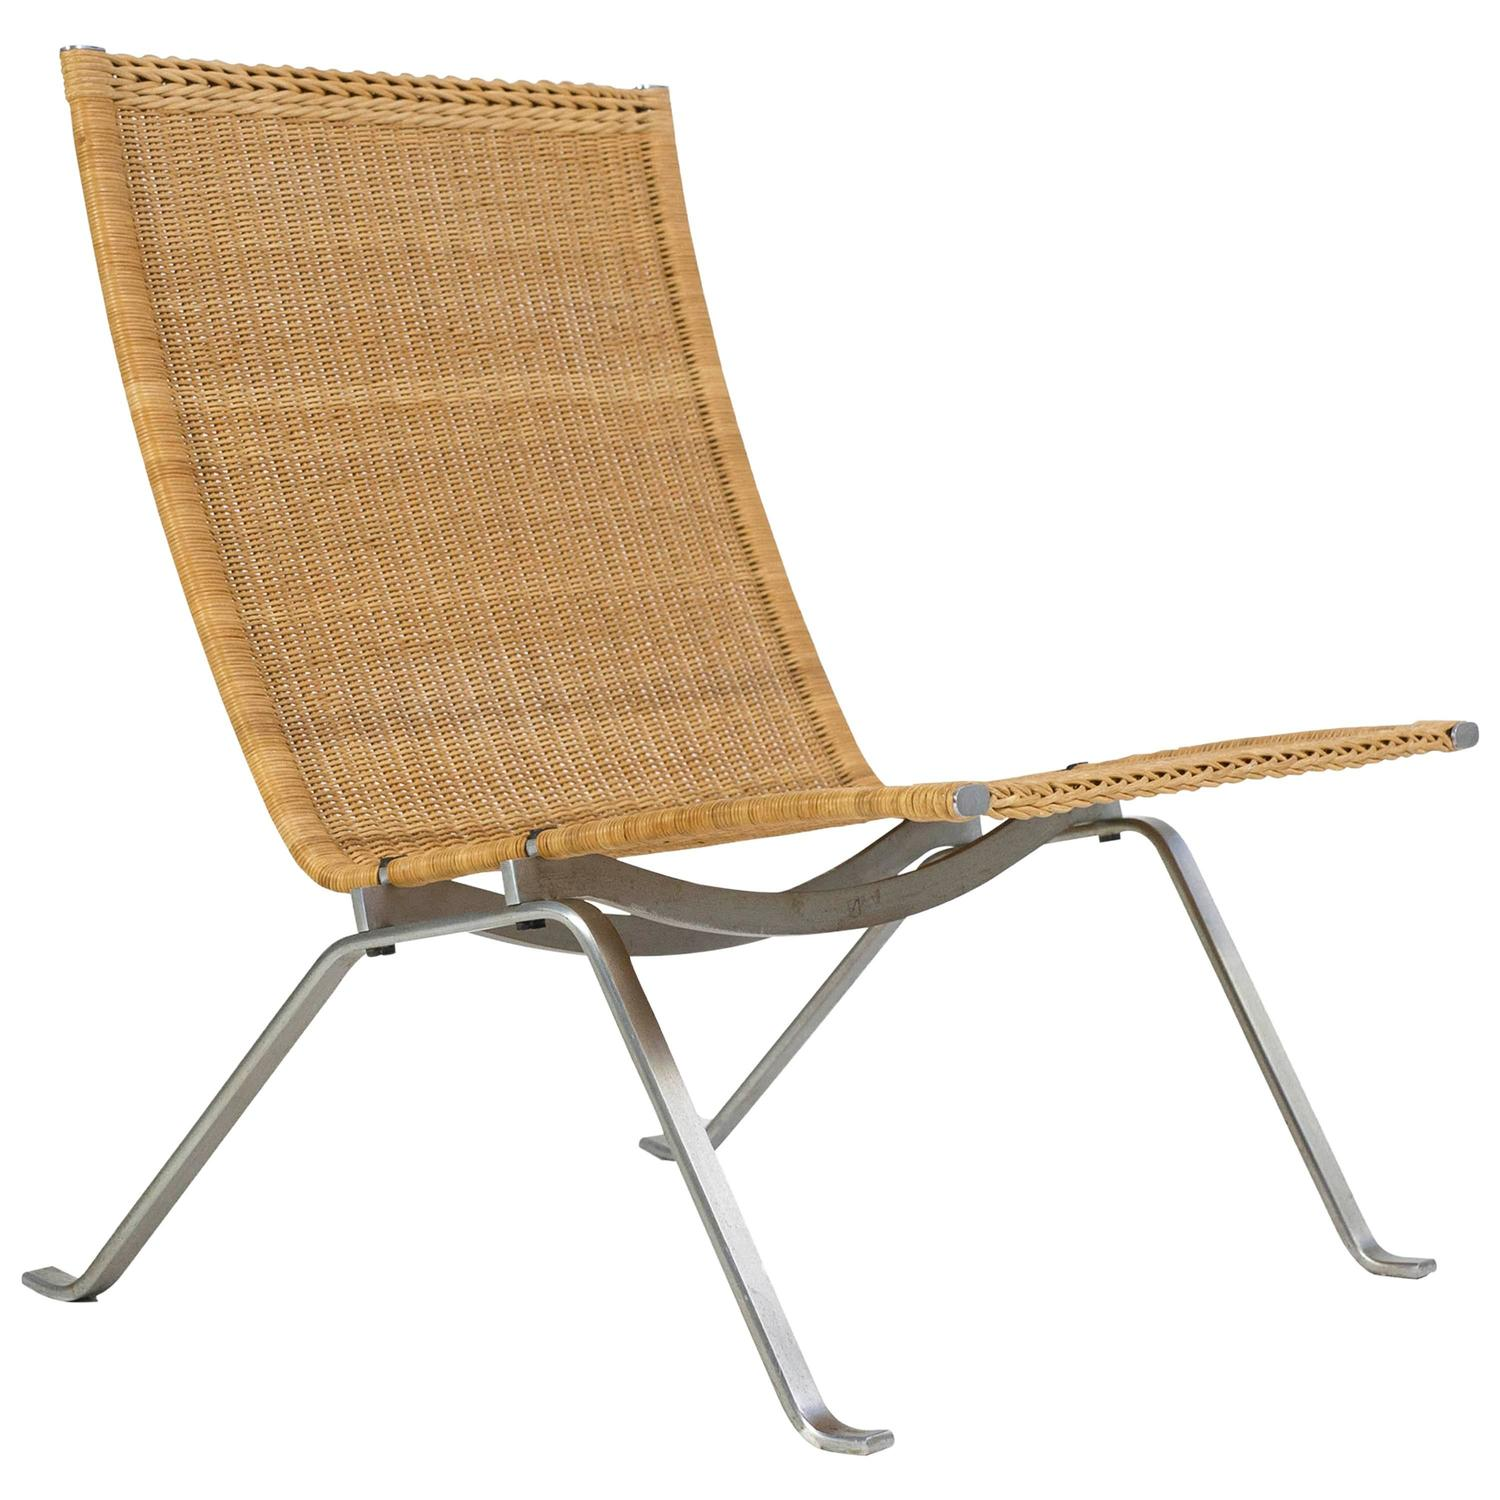 Poul Kjaerholm PK27 Easy Chair for E. Kold Christensen For Sale at 1stdibs  sc 1 st  1stDibs & Poul Kjaerholm PK27 Easy Chair for E. Kold Christensen For Sale at ...